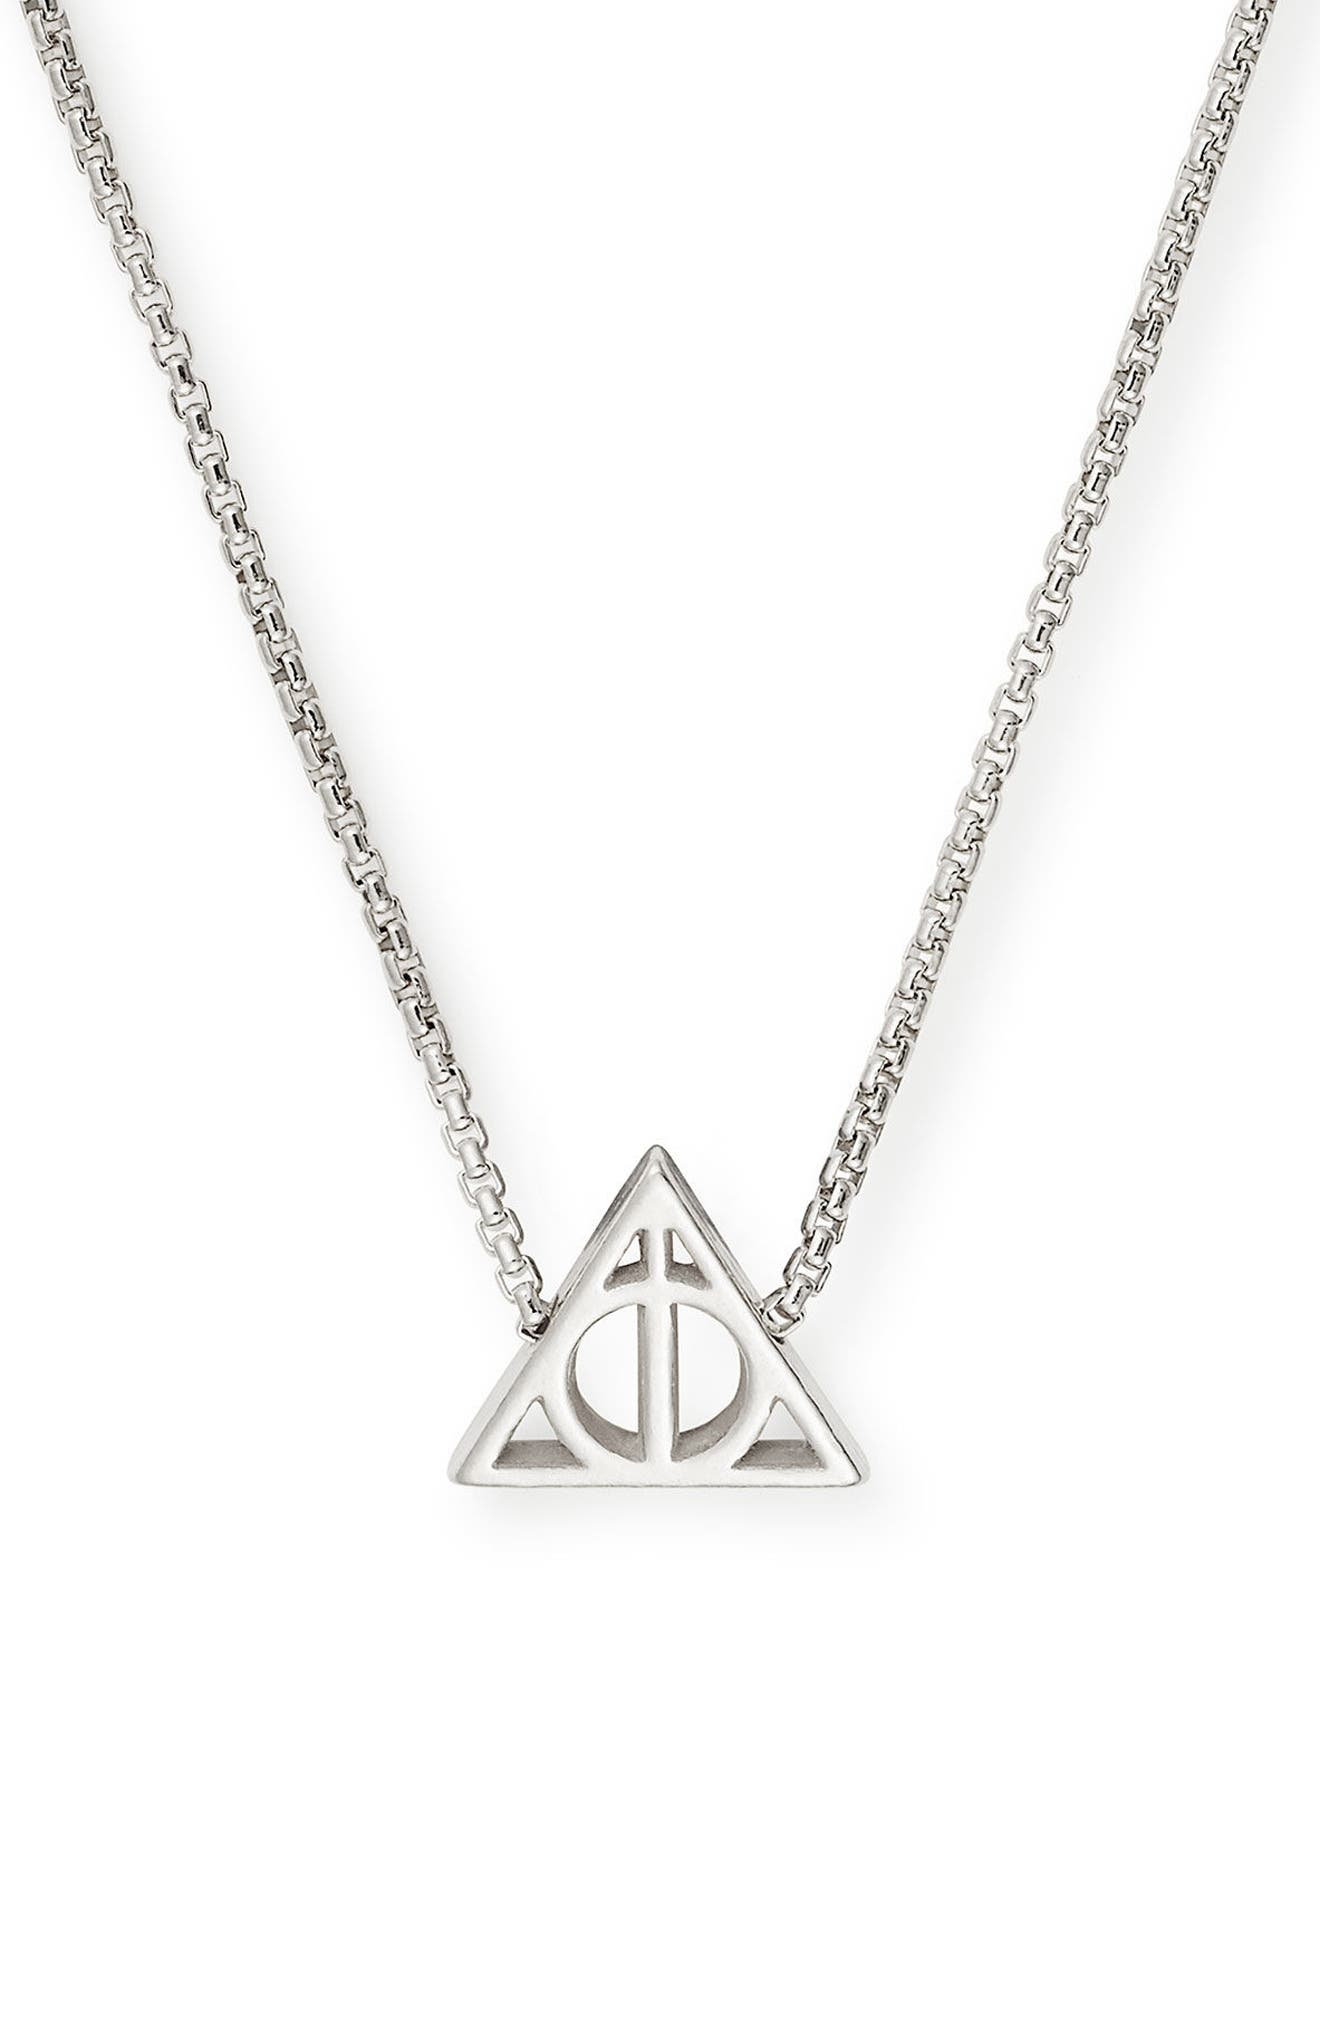 Harry Potter<sup>™</sup> Deathly Hallows<sup>™</sup> Necklace,                             Alternate thumbnail 2, color,                             040